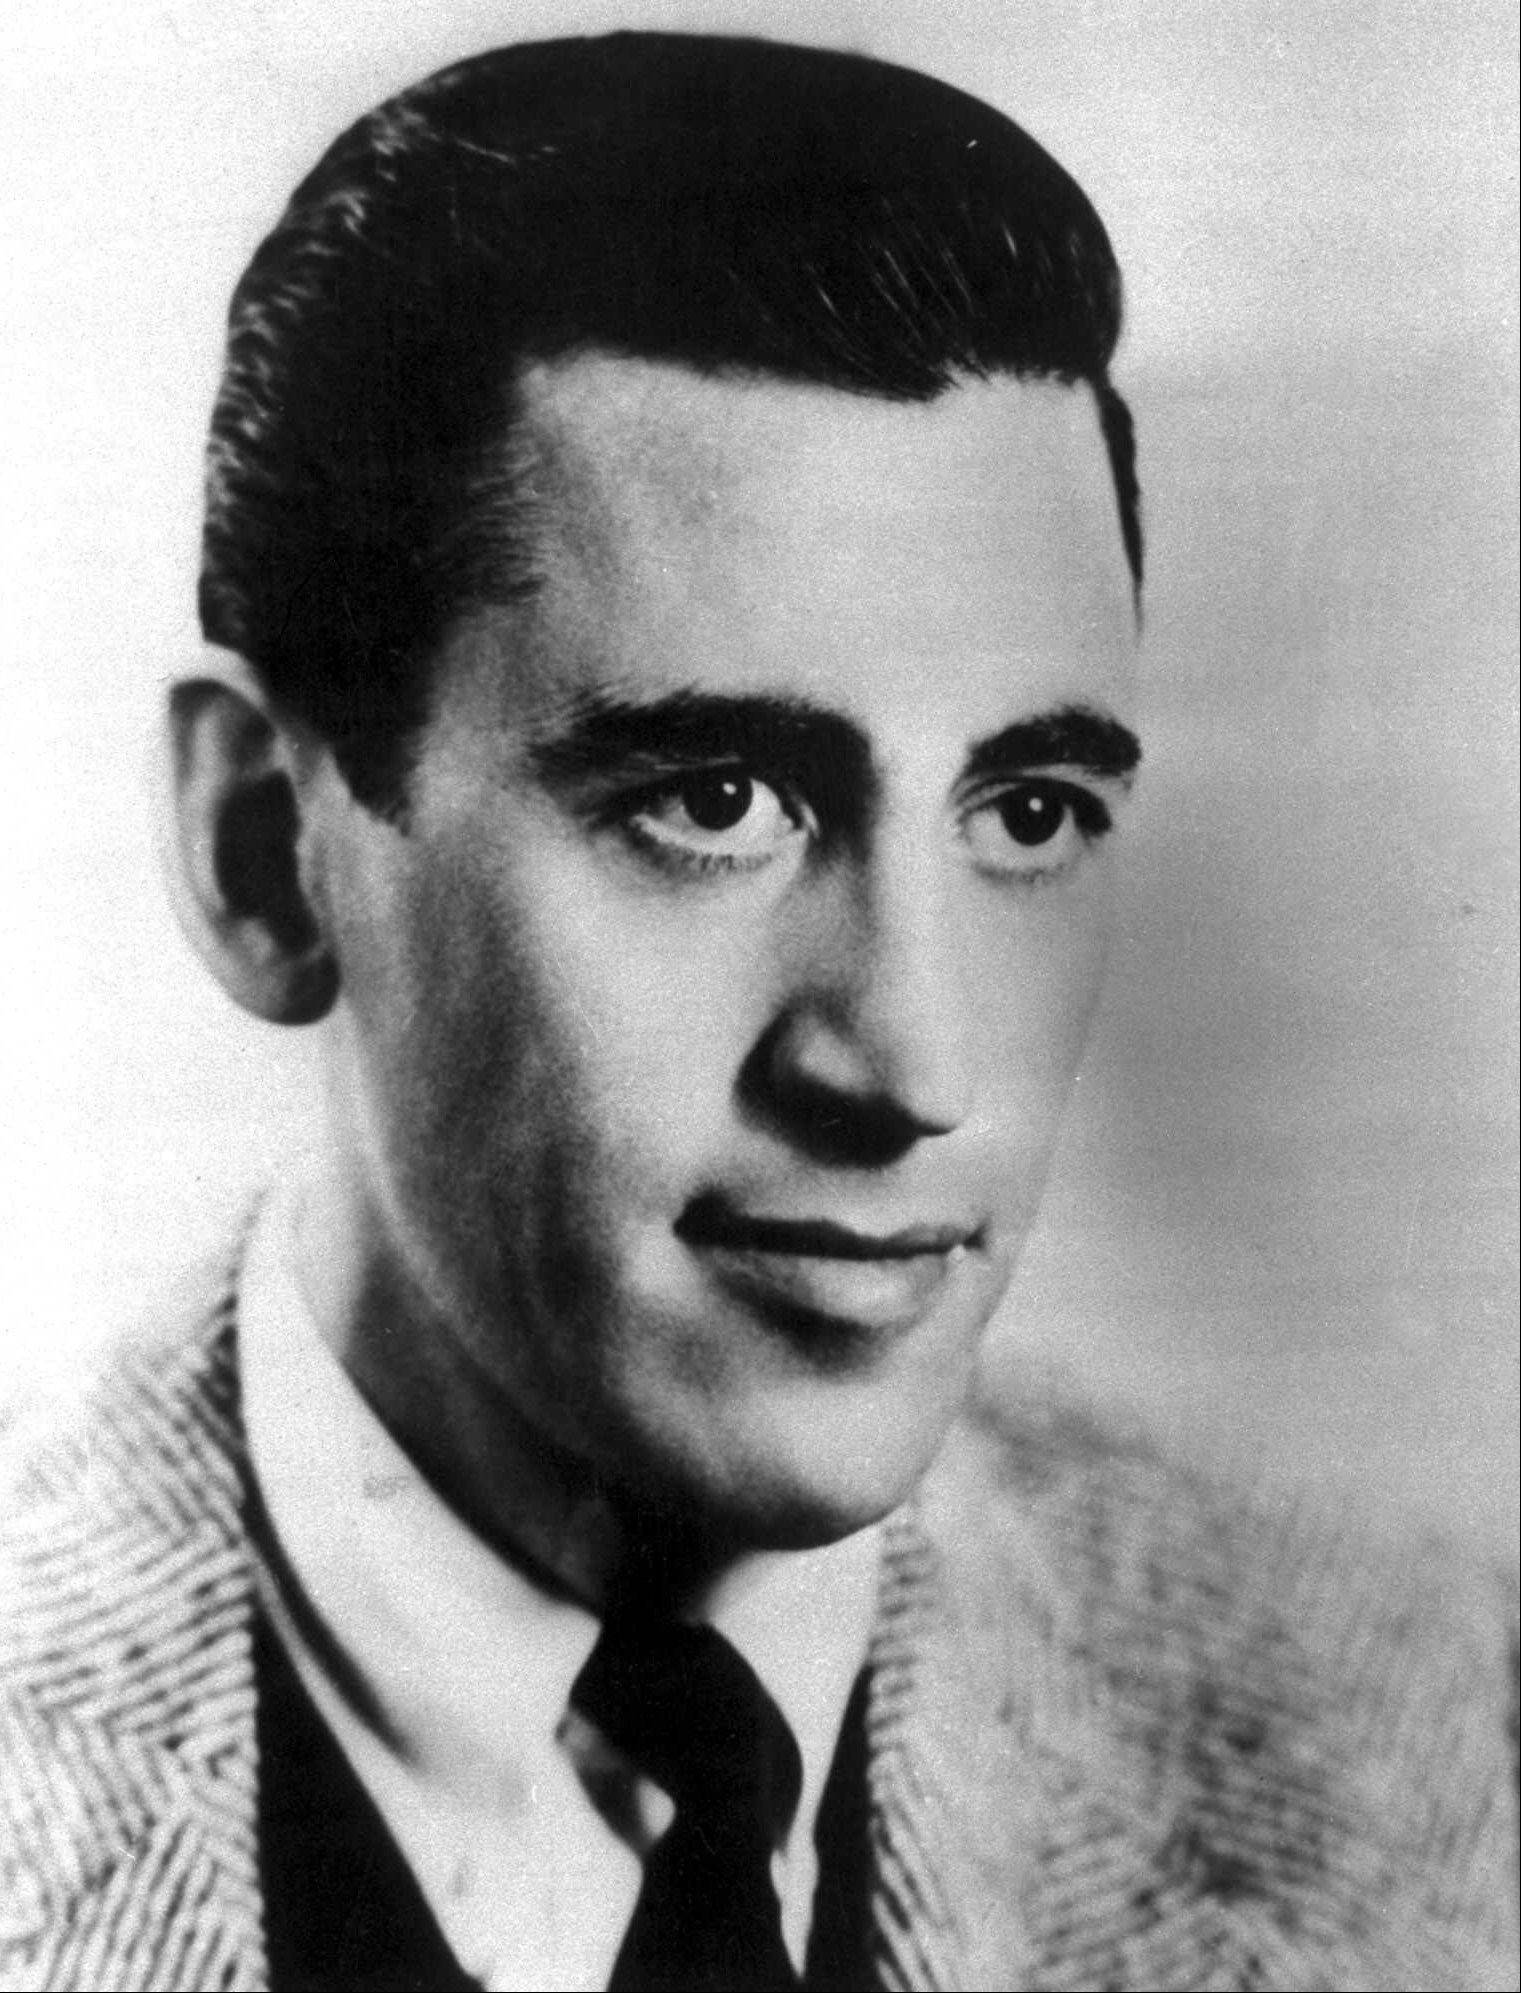 There may be new J.D. Salinger works released in the coming years, according to �The Catcher in the Rye� novelist�s biographers. Salinger died in 2010.